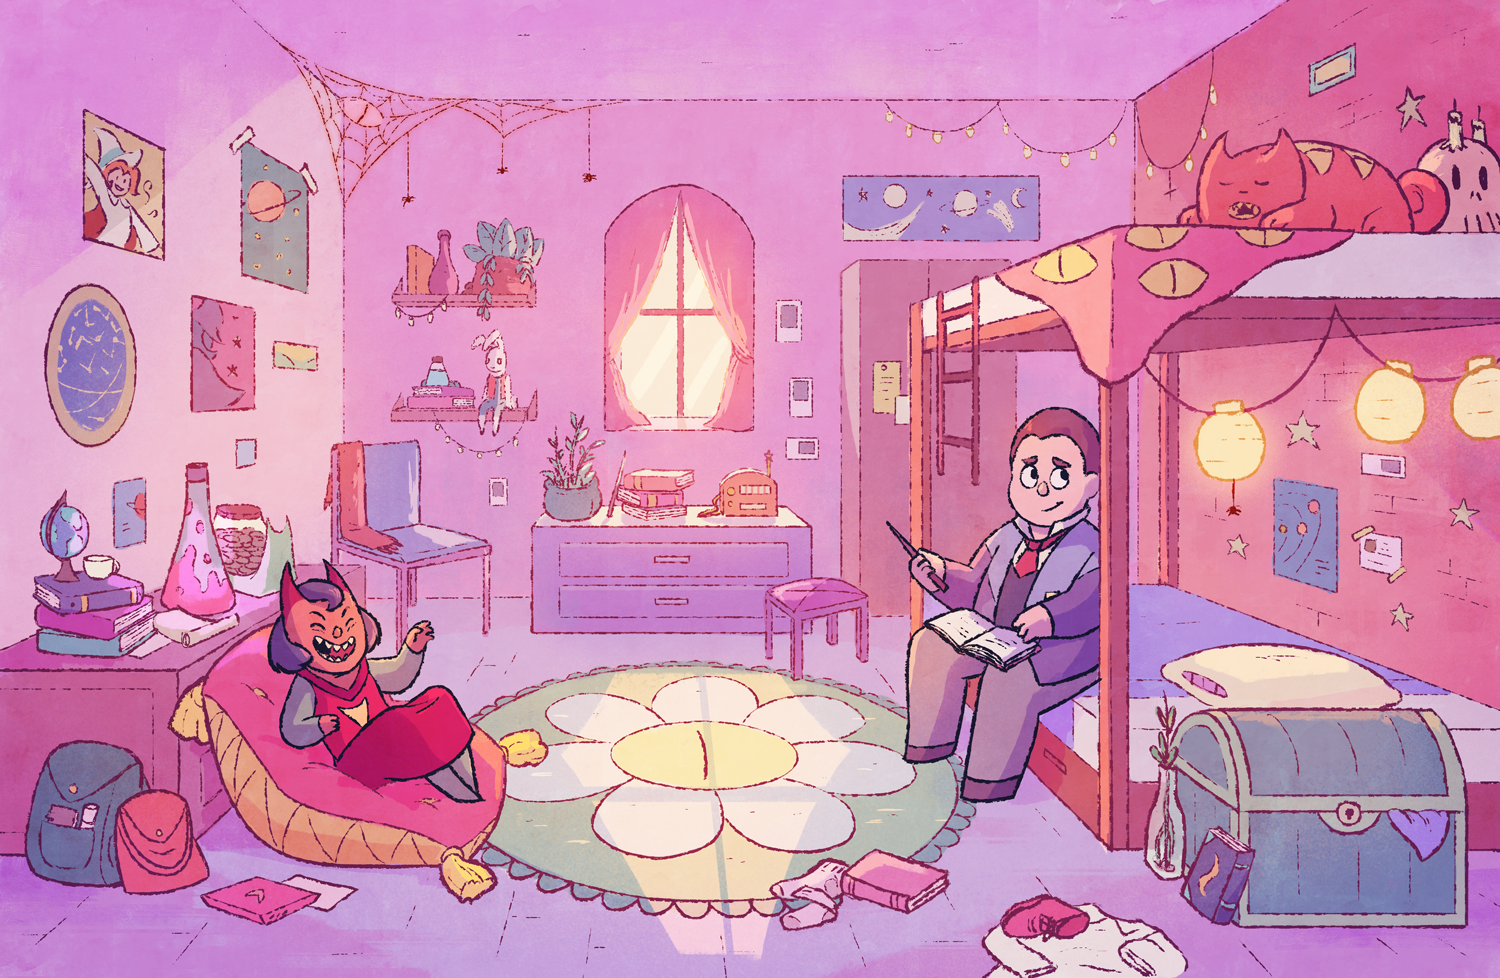 Wilbur and Amira's room